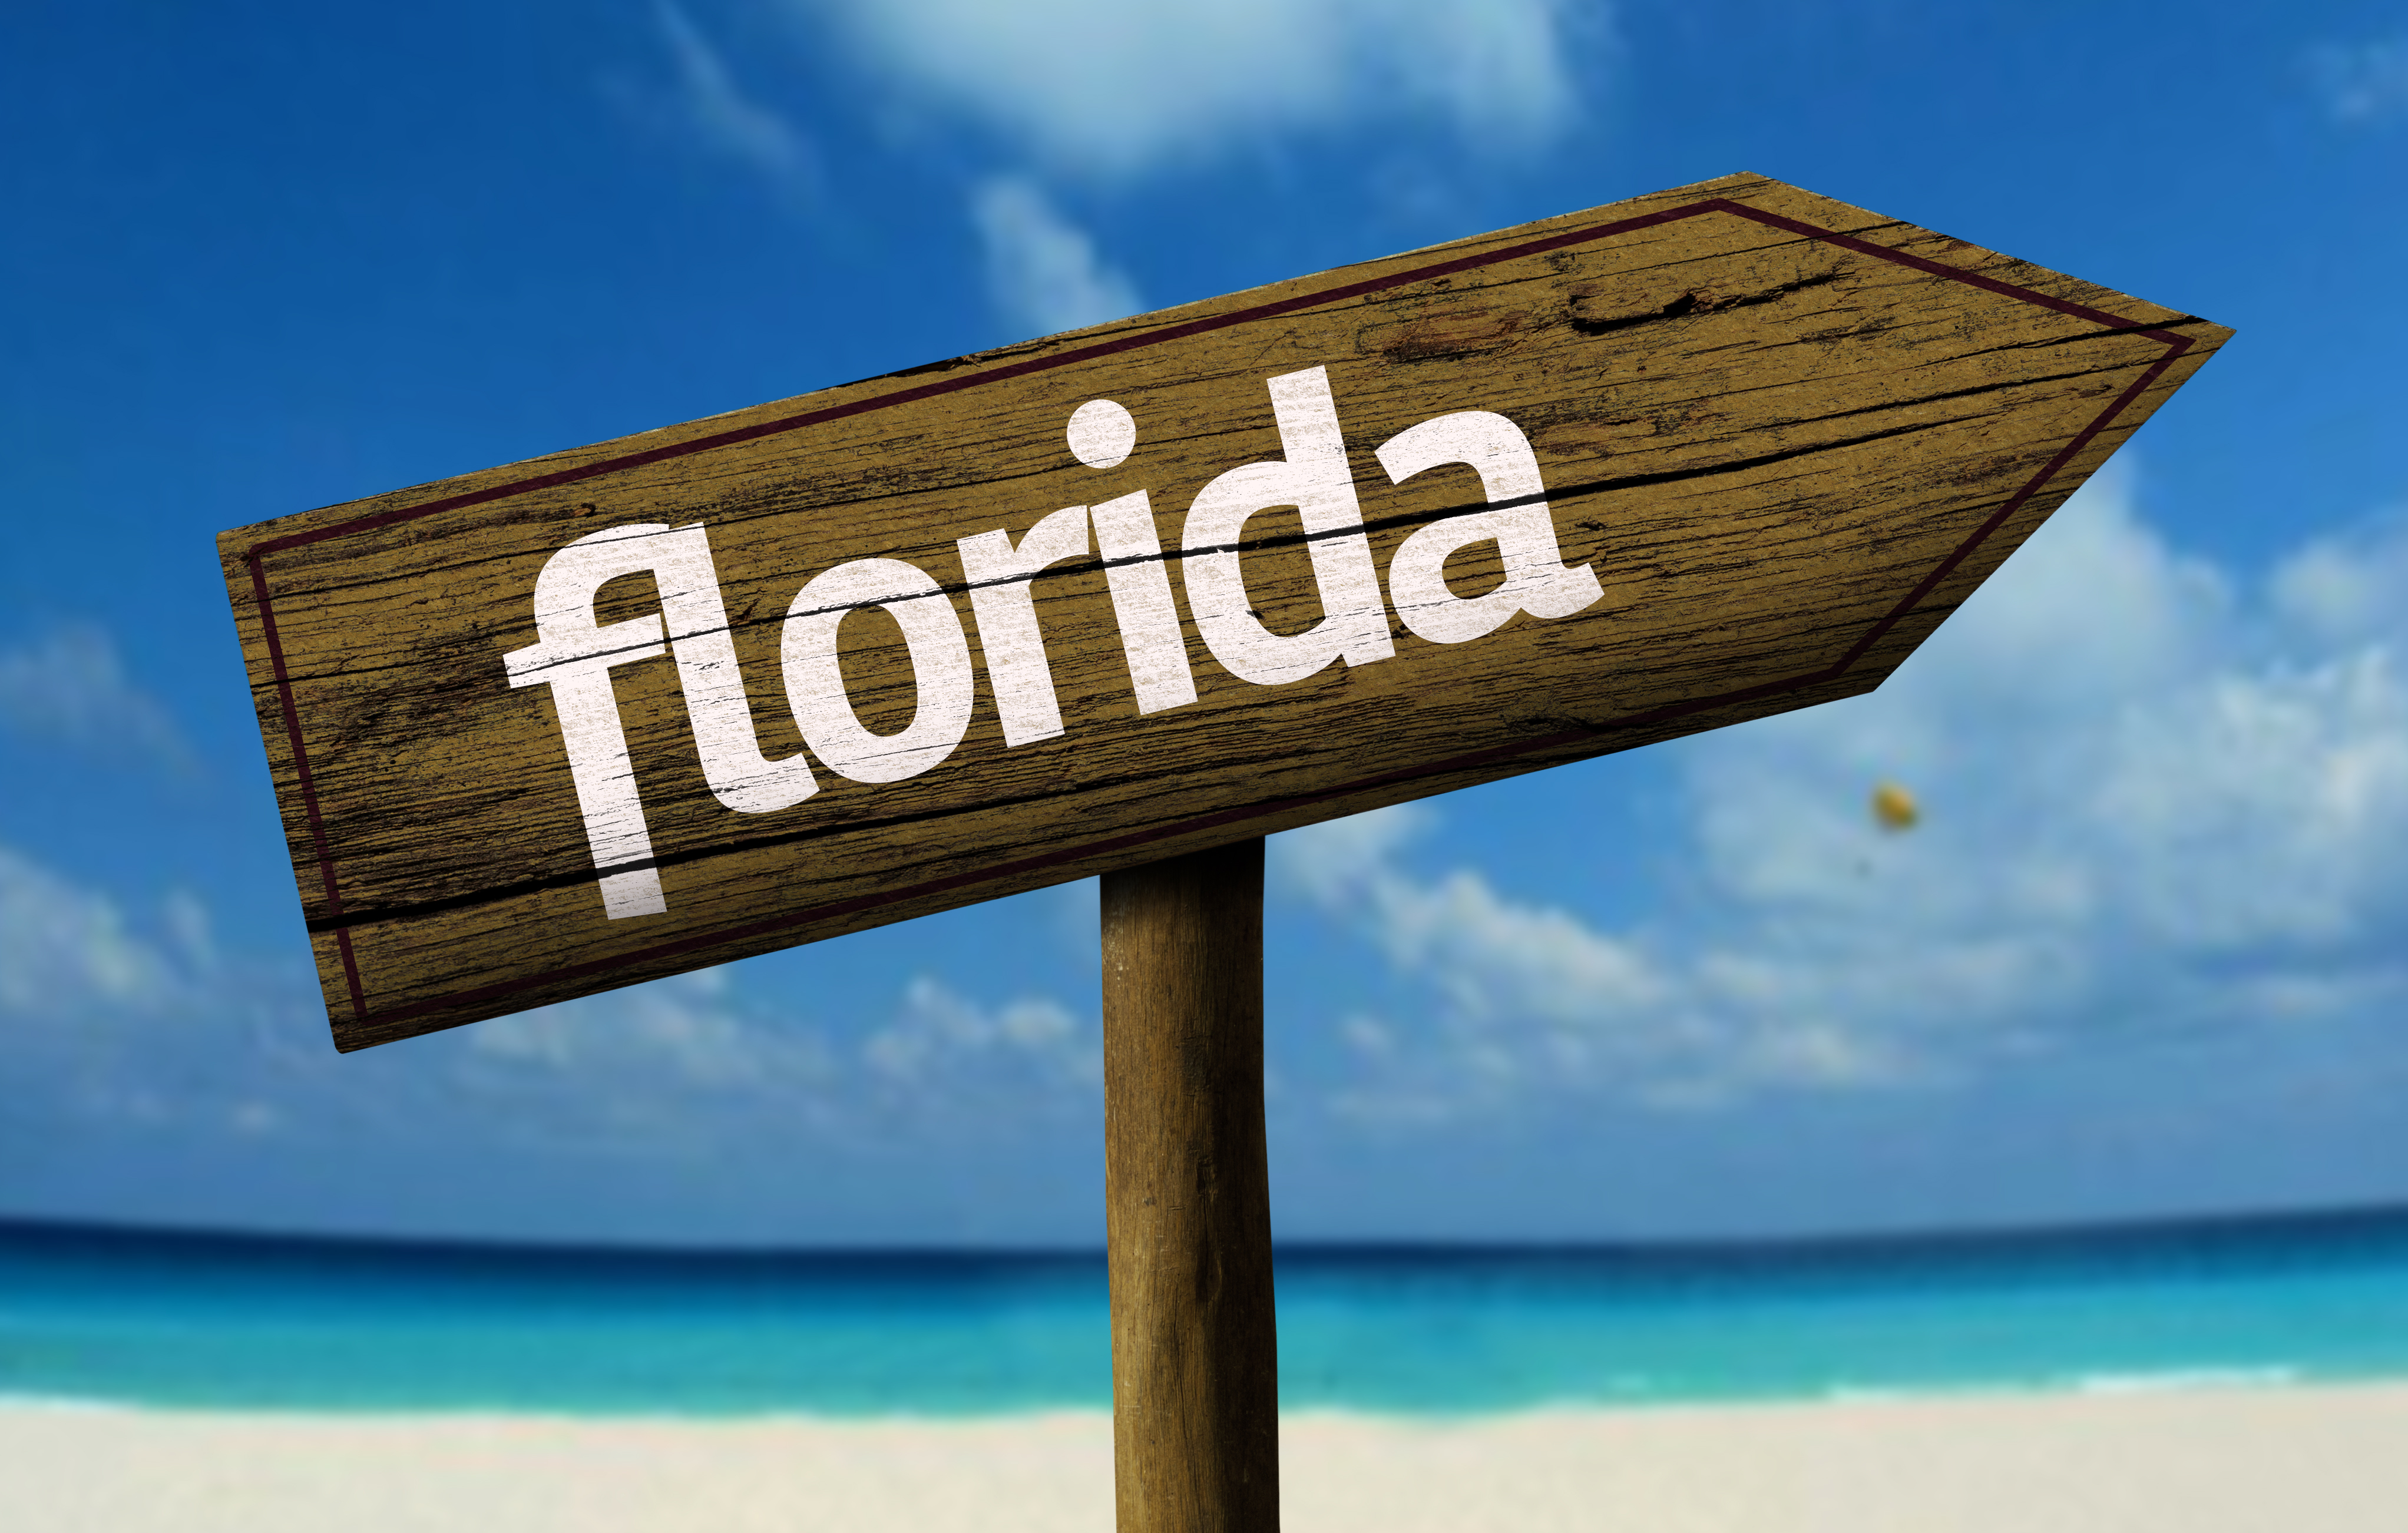 3 reasons you should move to florida 1 guys